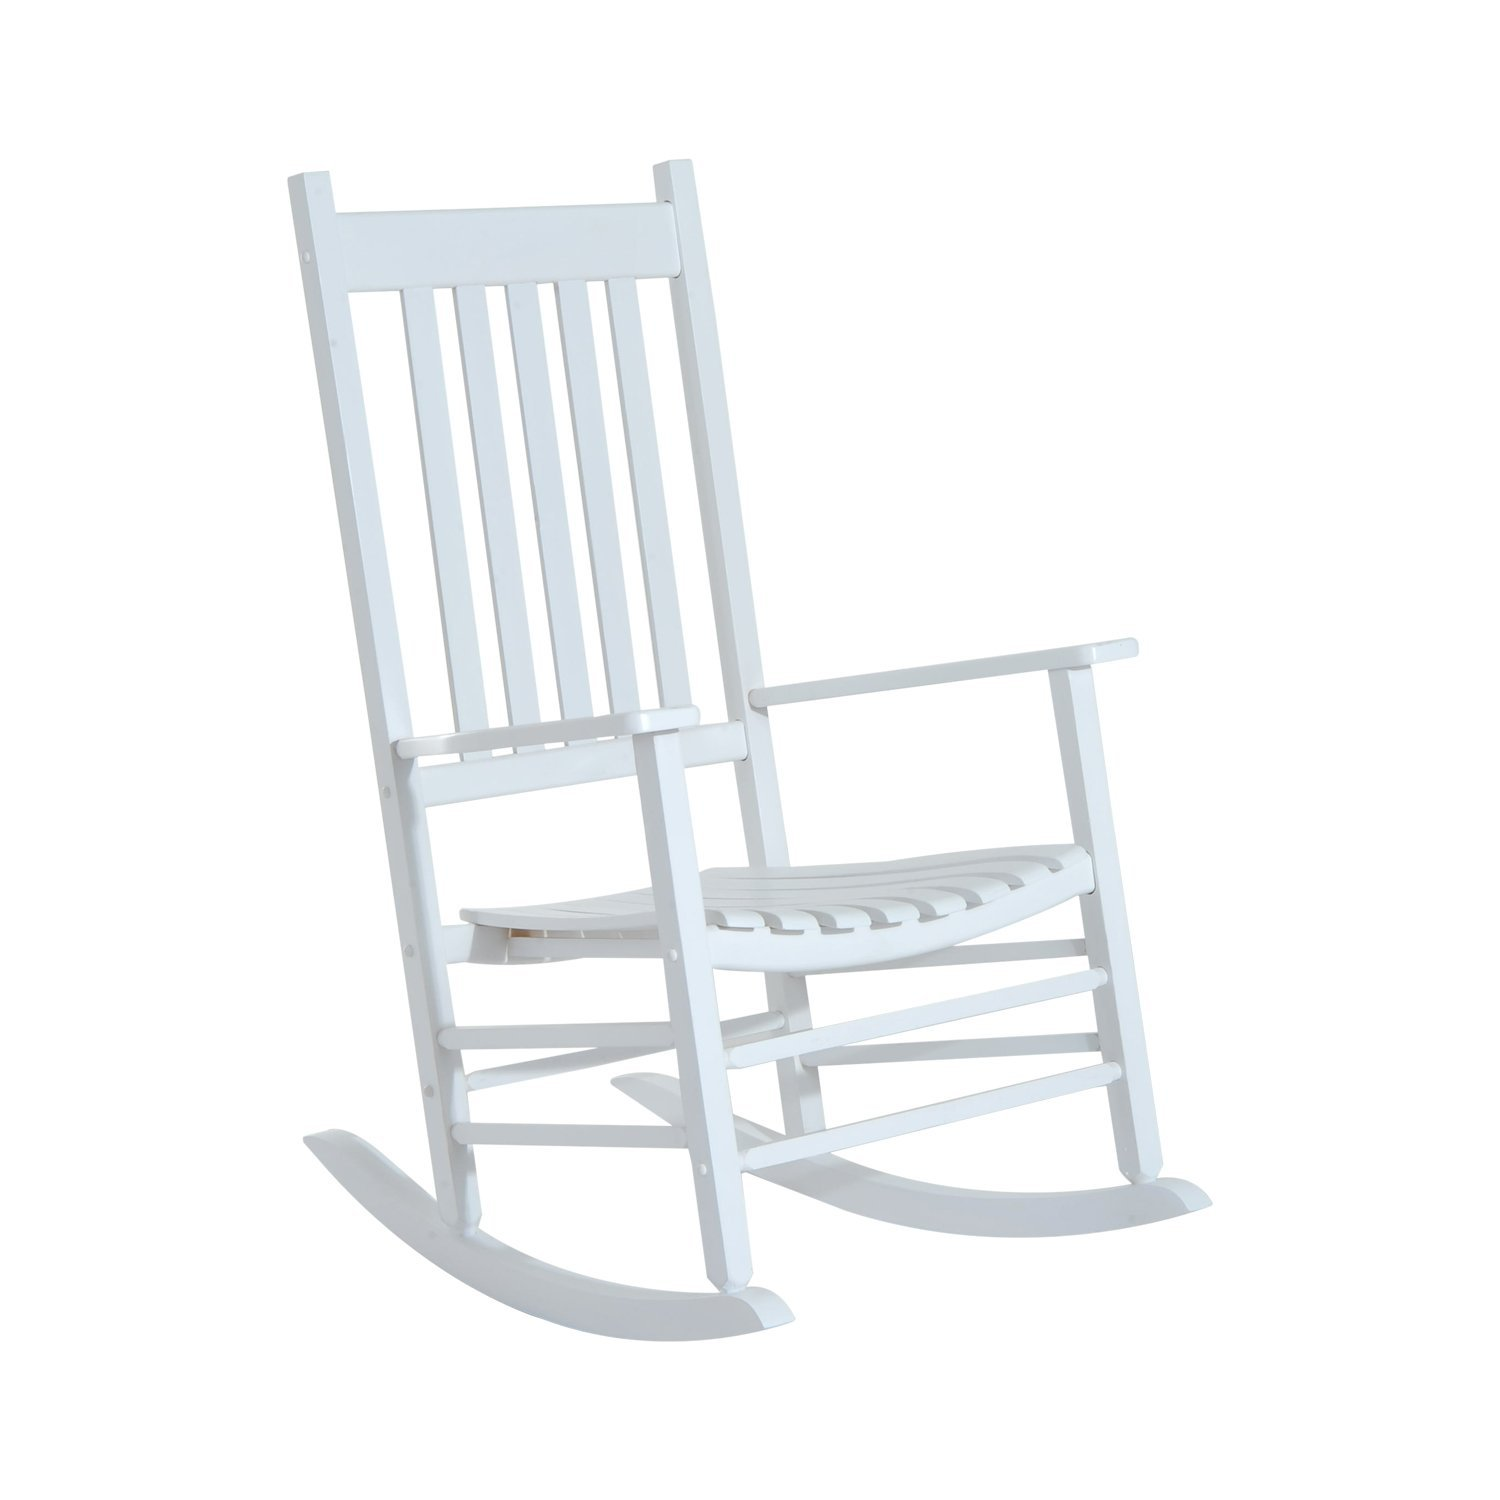 Outsunny Porch Rocking Chair - Outdoor Patio Wooden Rocker - White  sc 1 st  Walmart & Outsunny Porch Rocking Chair - Outdoor Patio Wooden Rocker - White ...